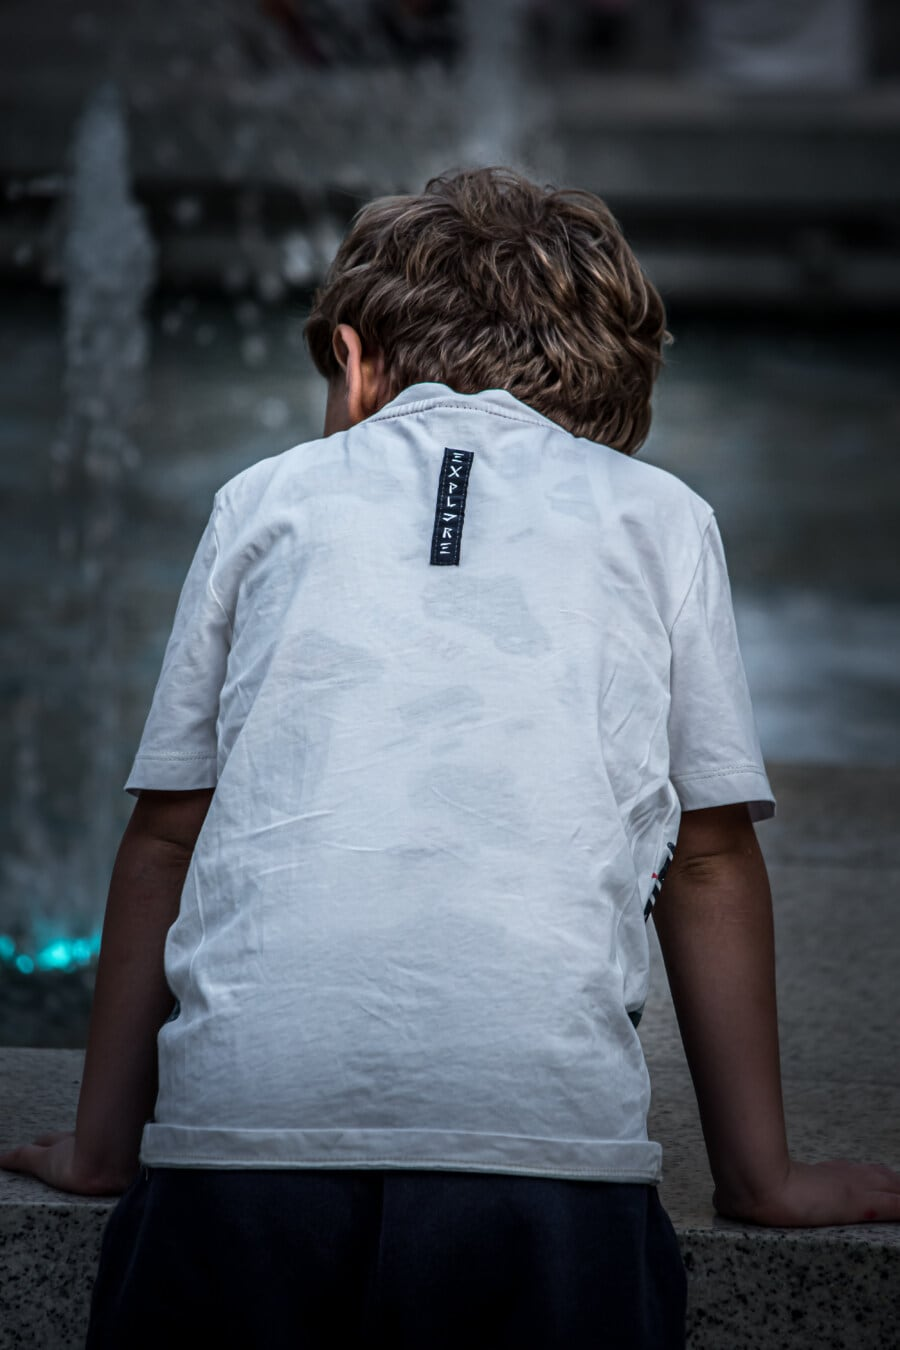 boy, child, fountain, looking, shirt, street, person, portrait, young, outdoors